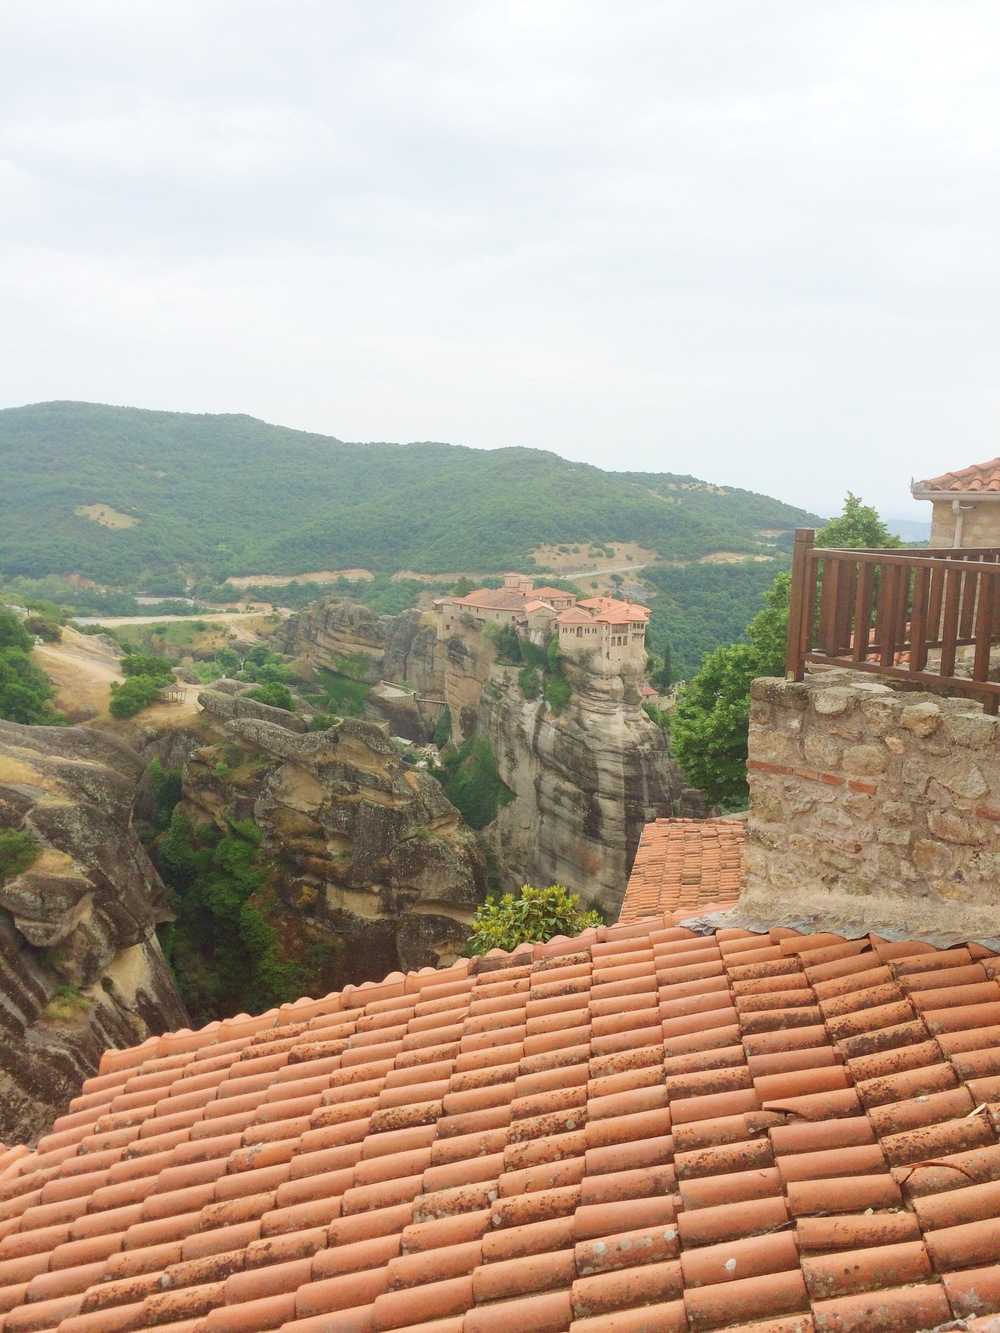 Greece Highlights - Monasteries of Meteora and More | Sundays and Somedays